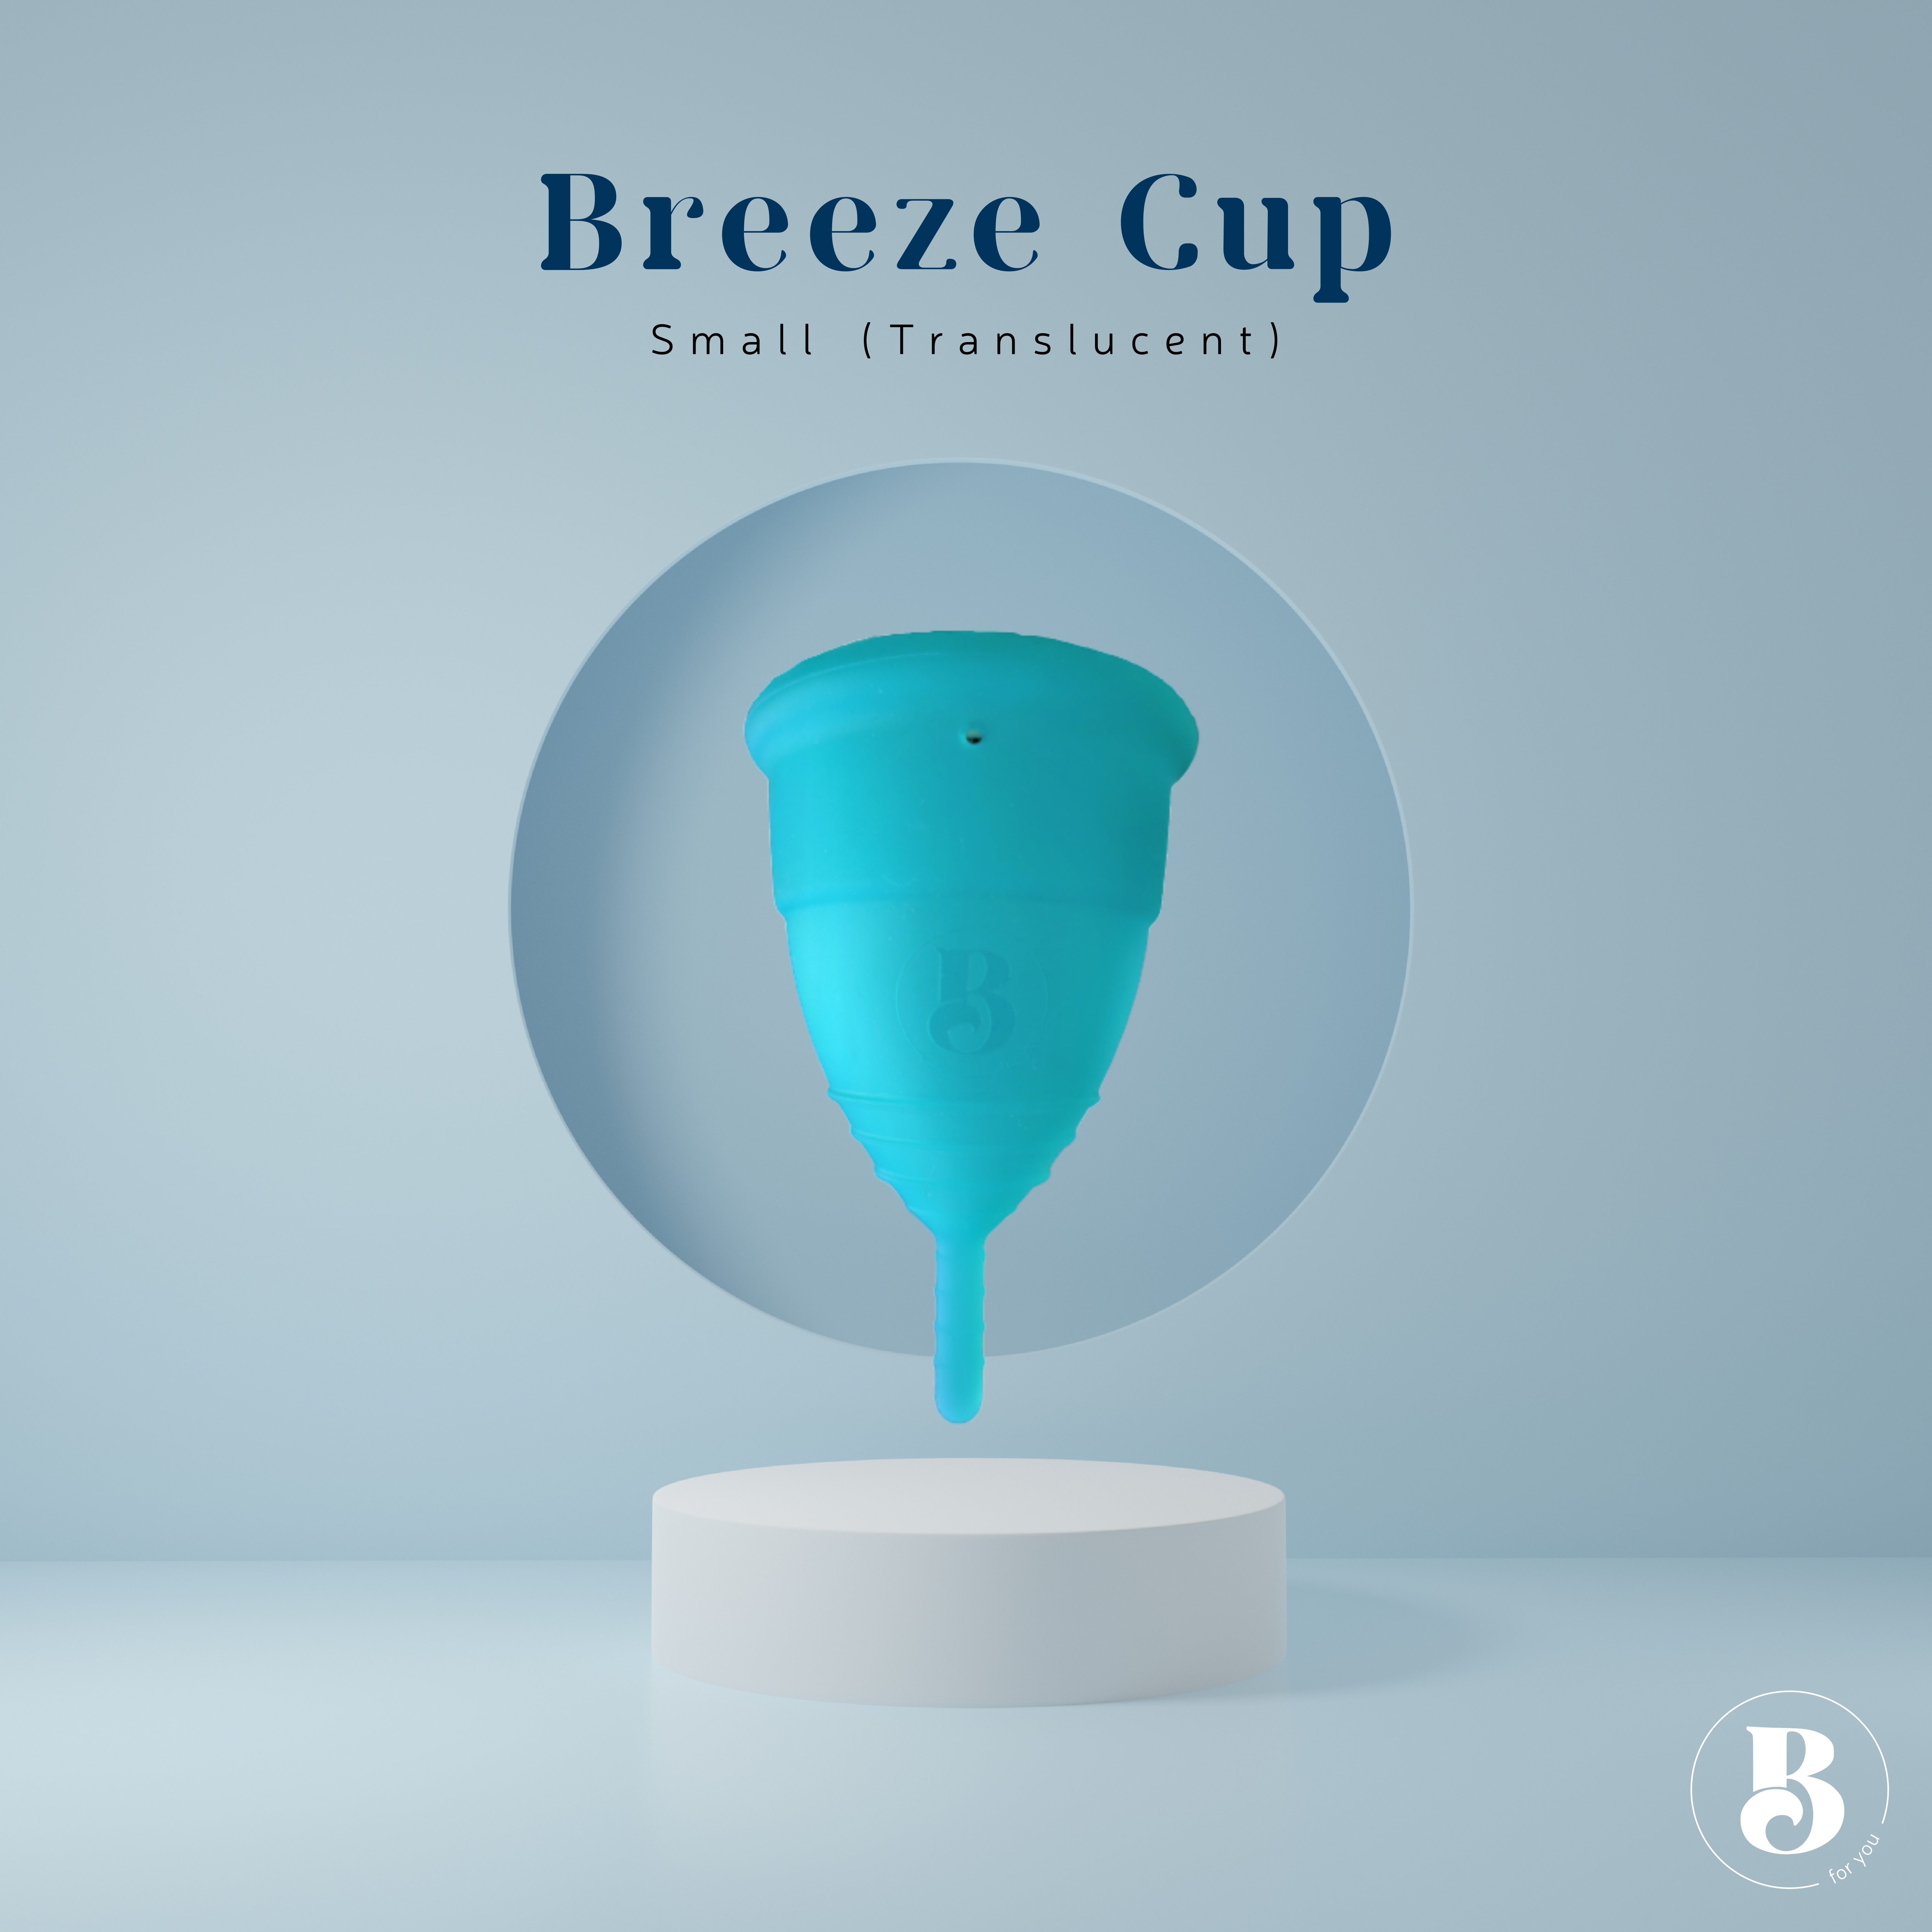 Breeze Cup Small Translucent